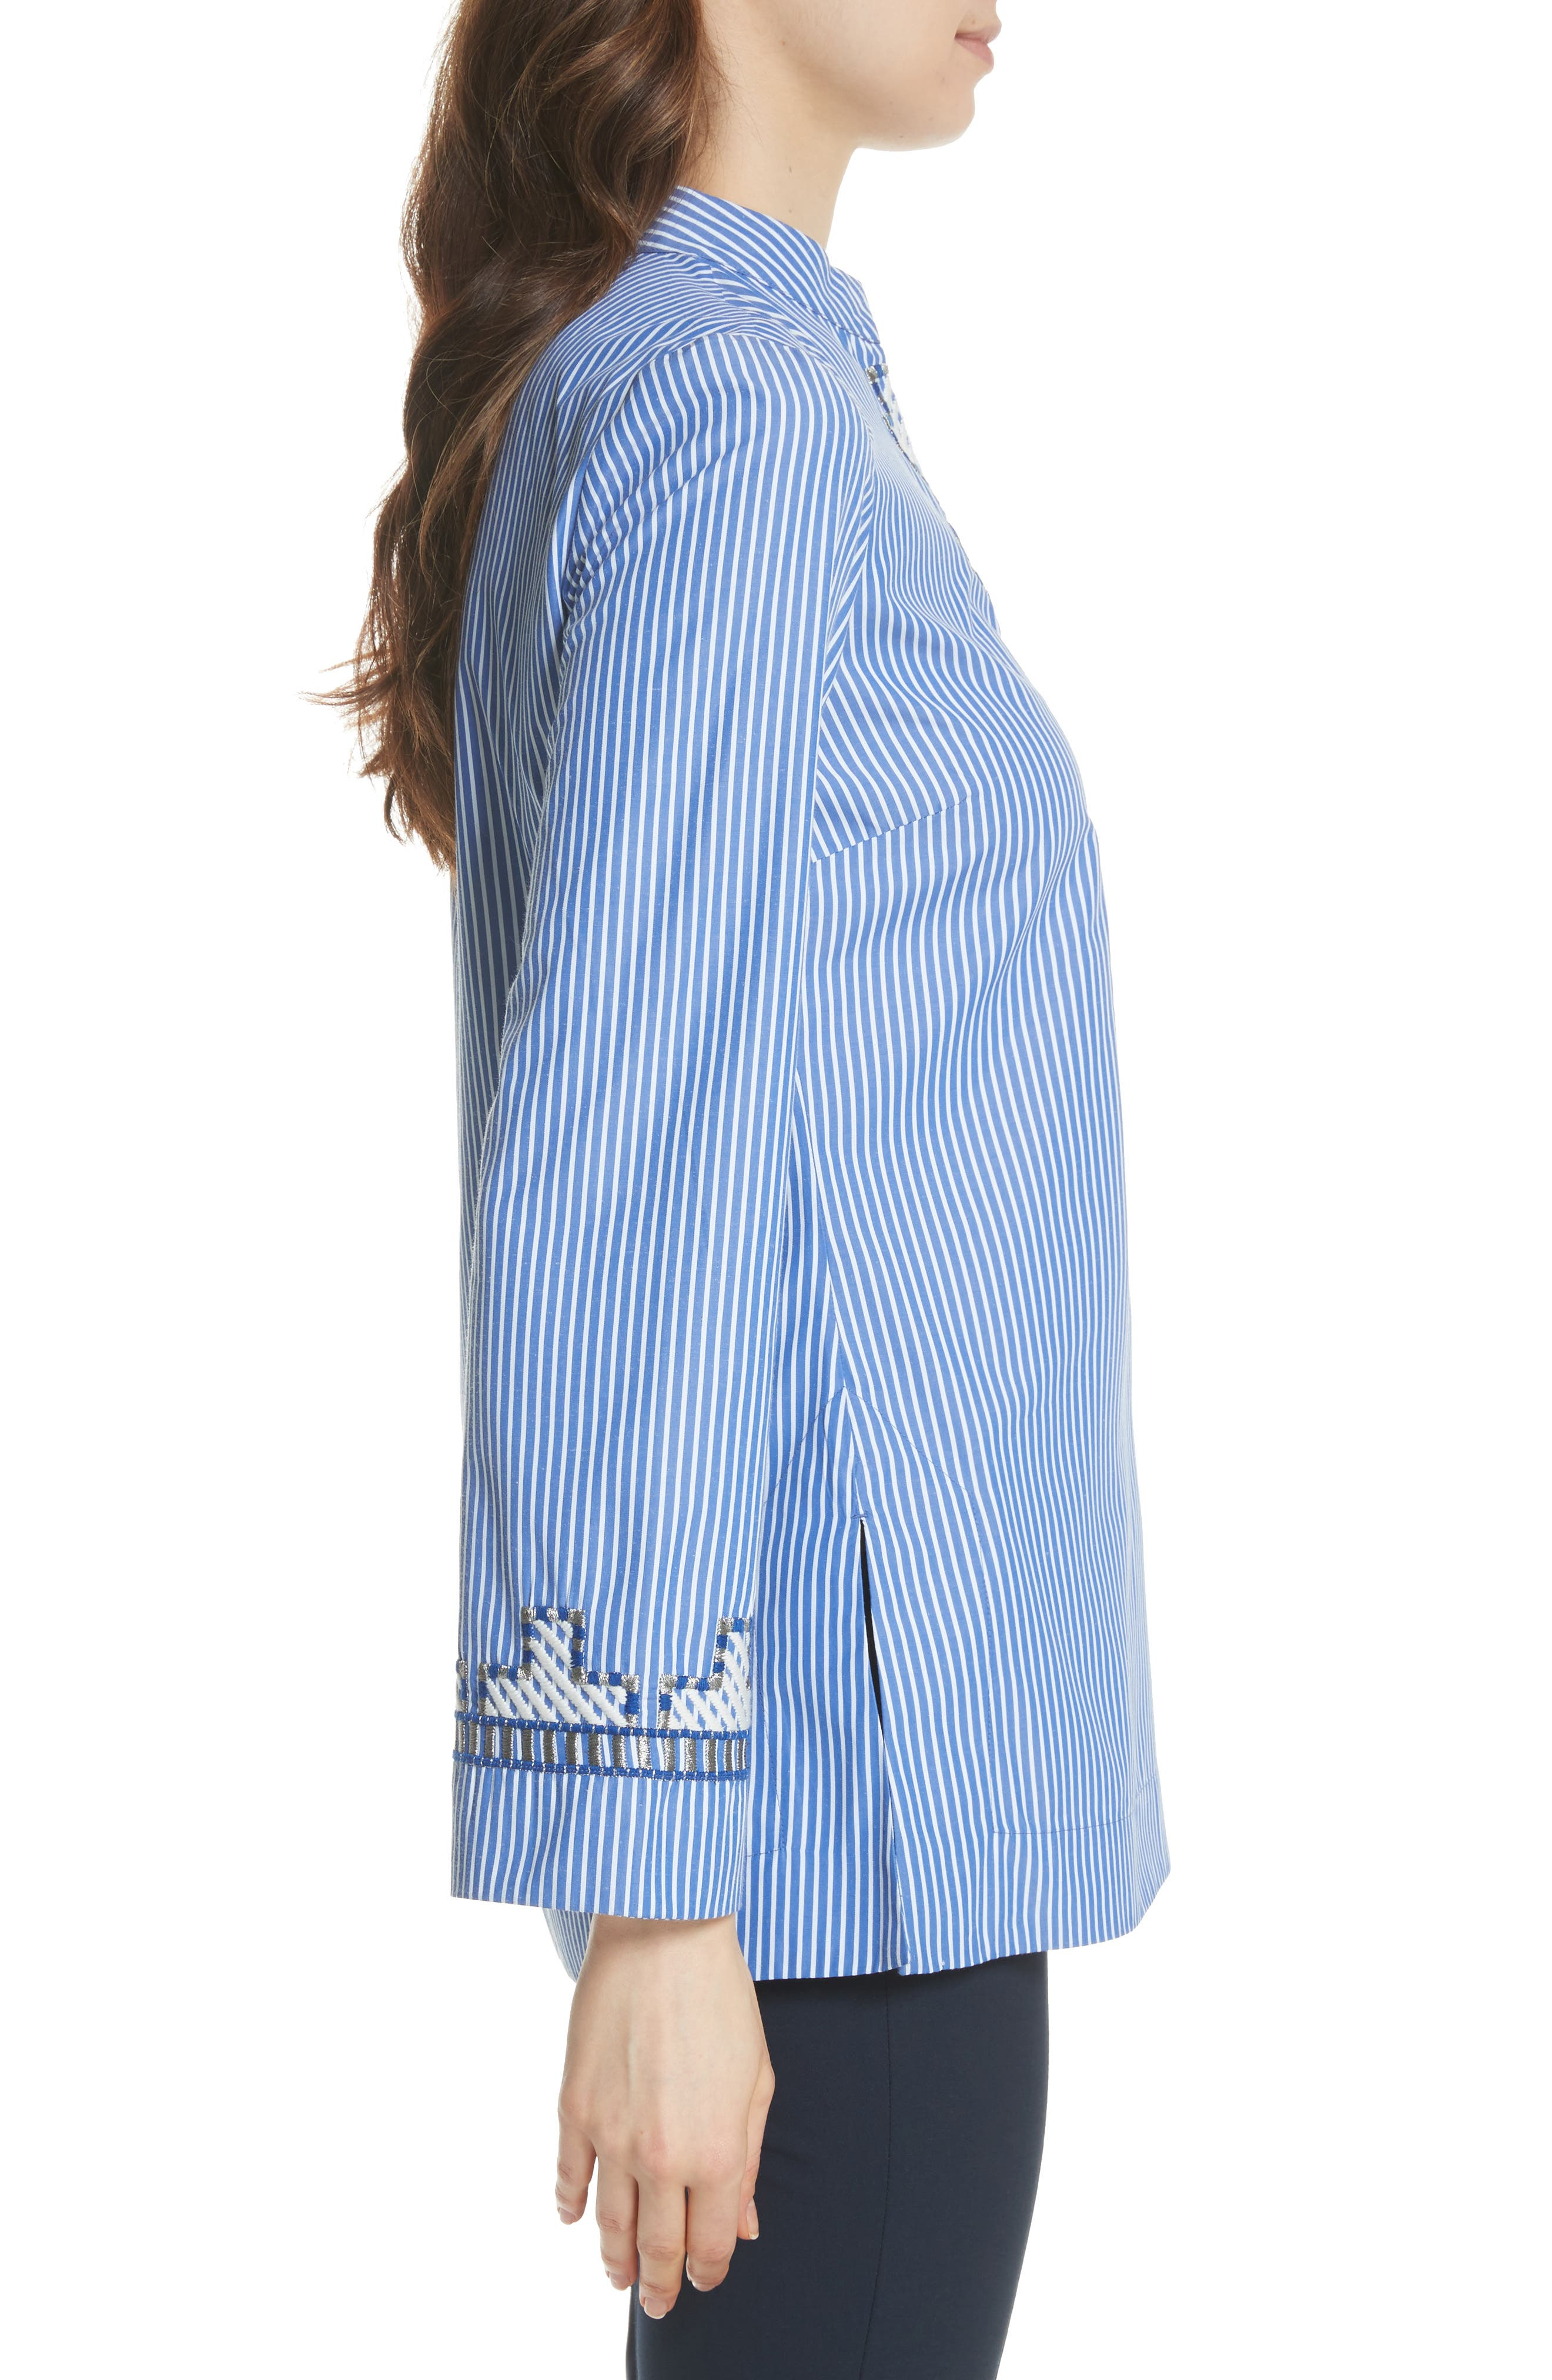 Tory Embroidered Stripe Tunic,                             Alternate thumbnail 3, color,                             Blue/ White